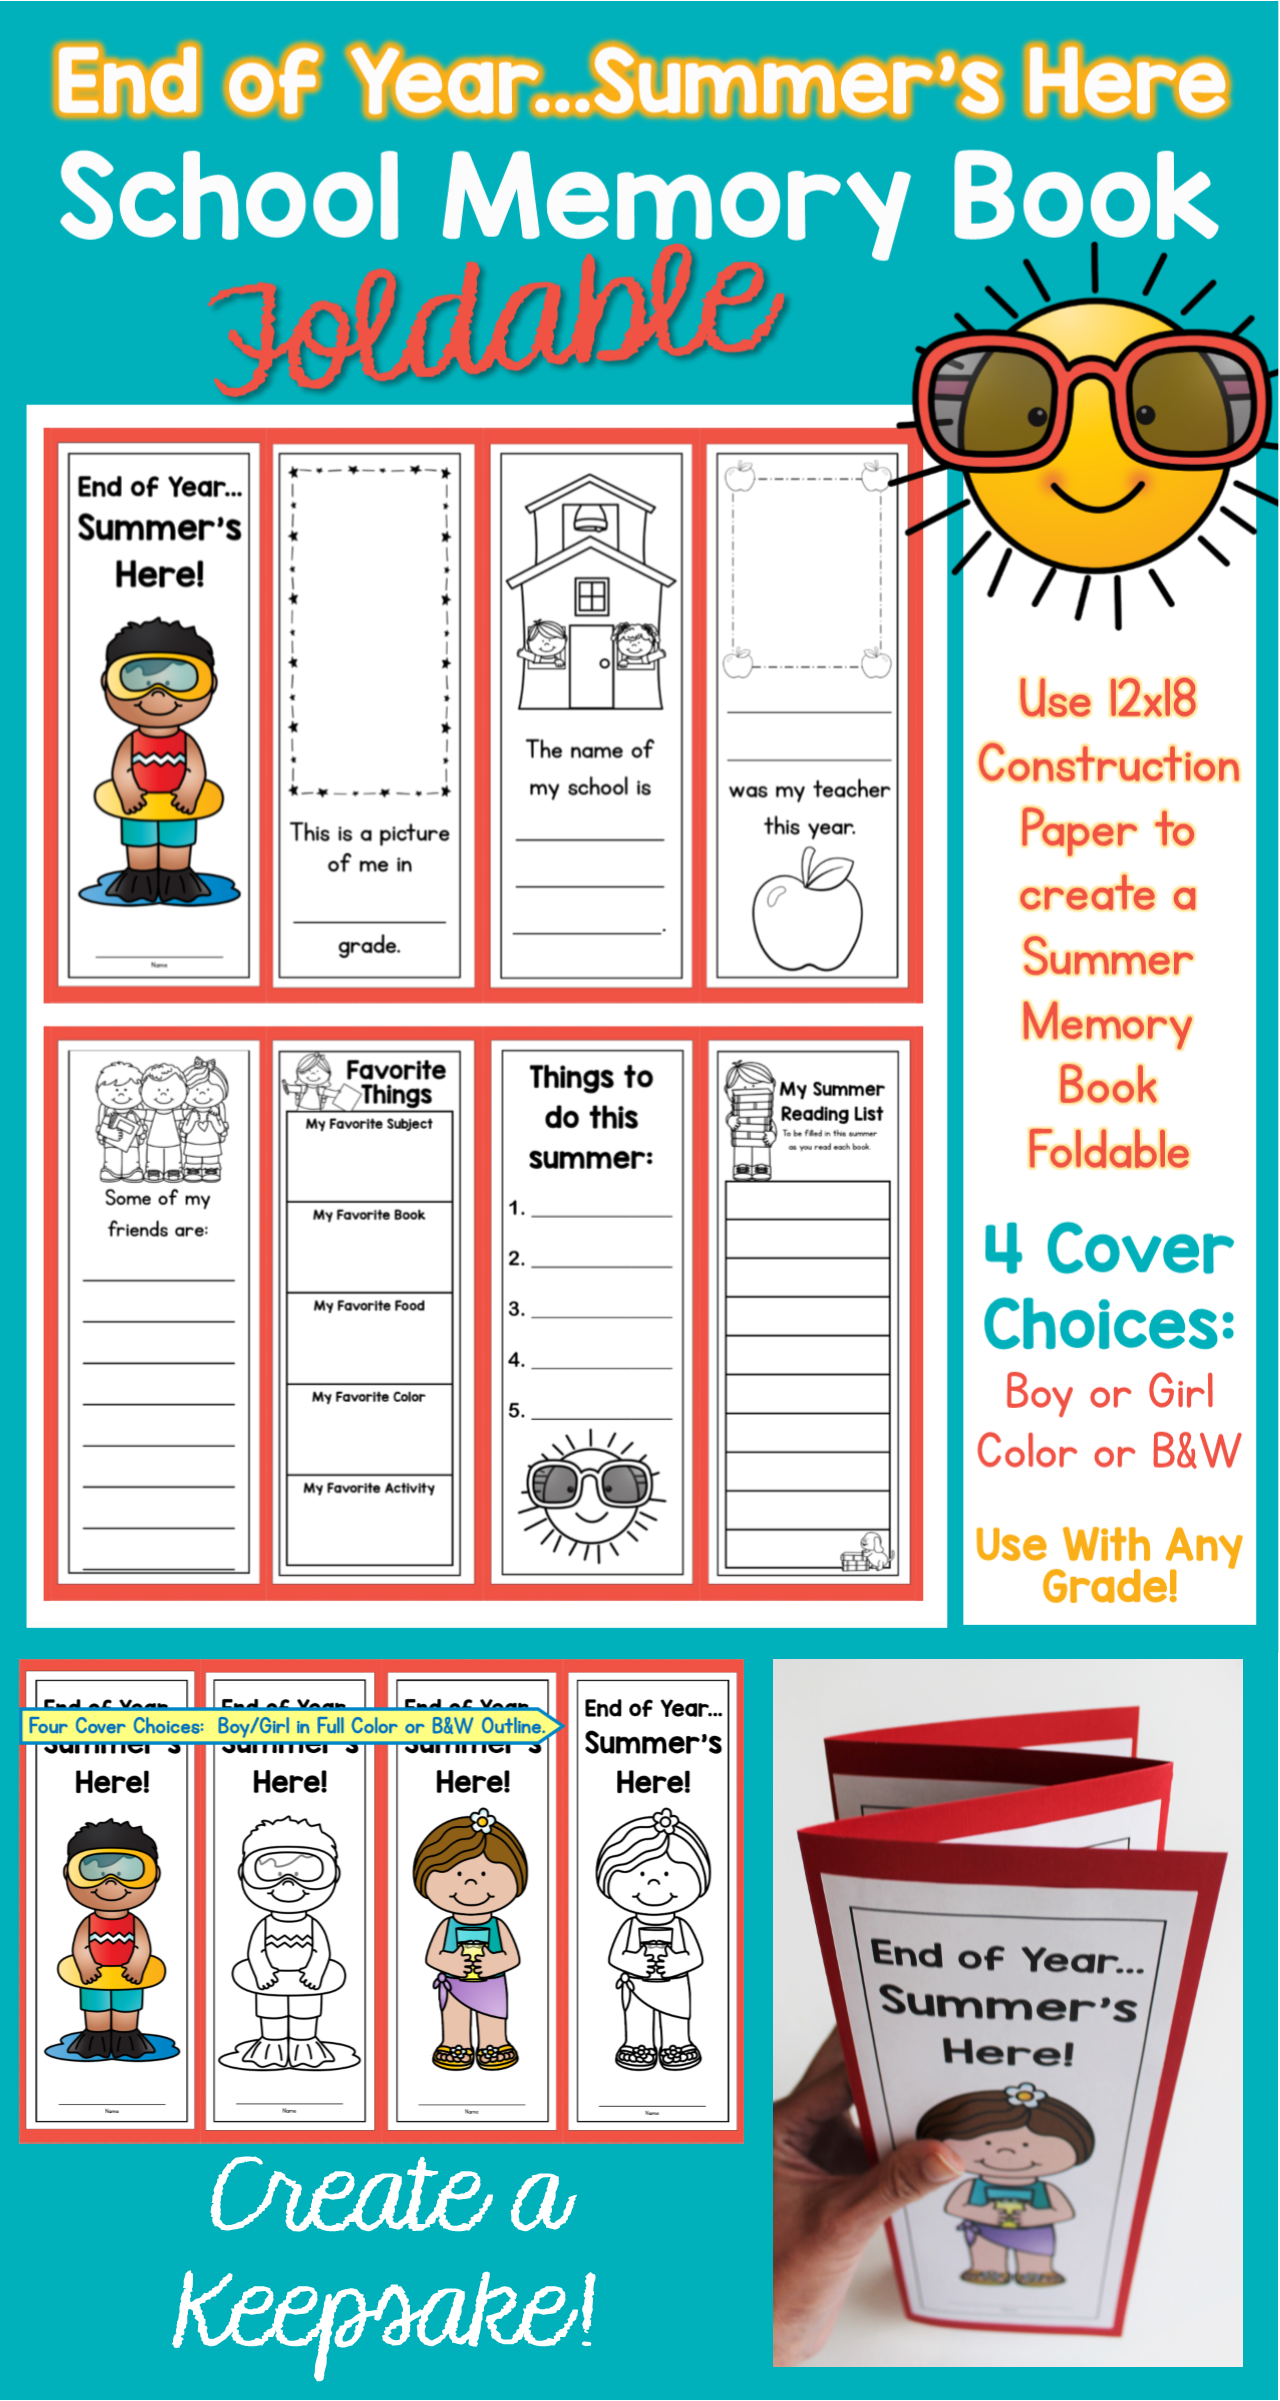 End Of Year Mmer S Here School Memory Book Foldable